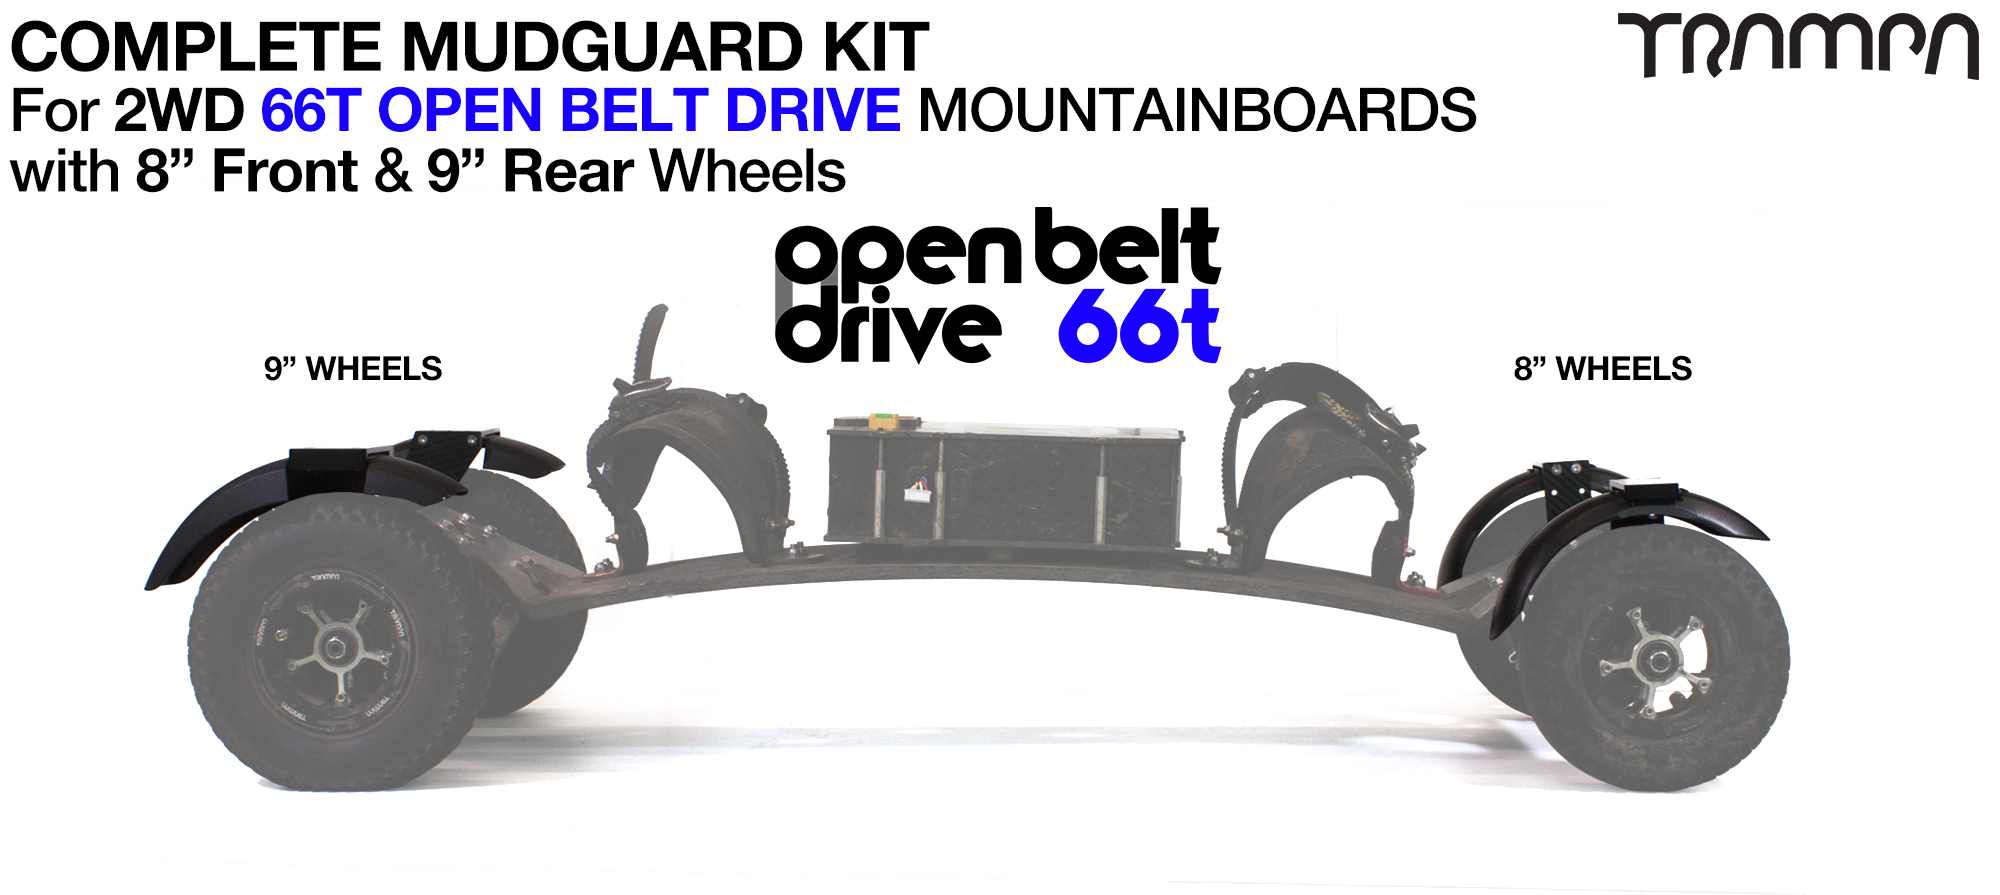 "Full Mudguard Kit for 2WD 66T OPEN BELT DRIVE Mountainboards - 8"" & 9"" Wheels"